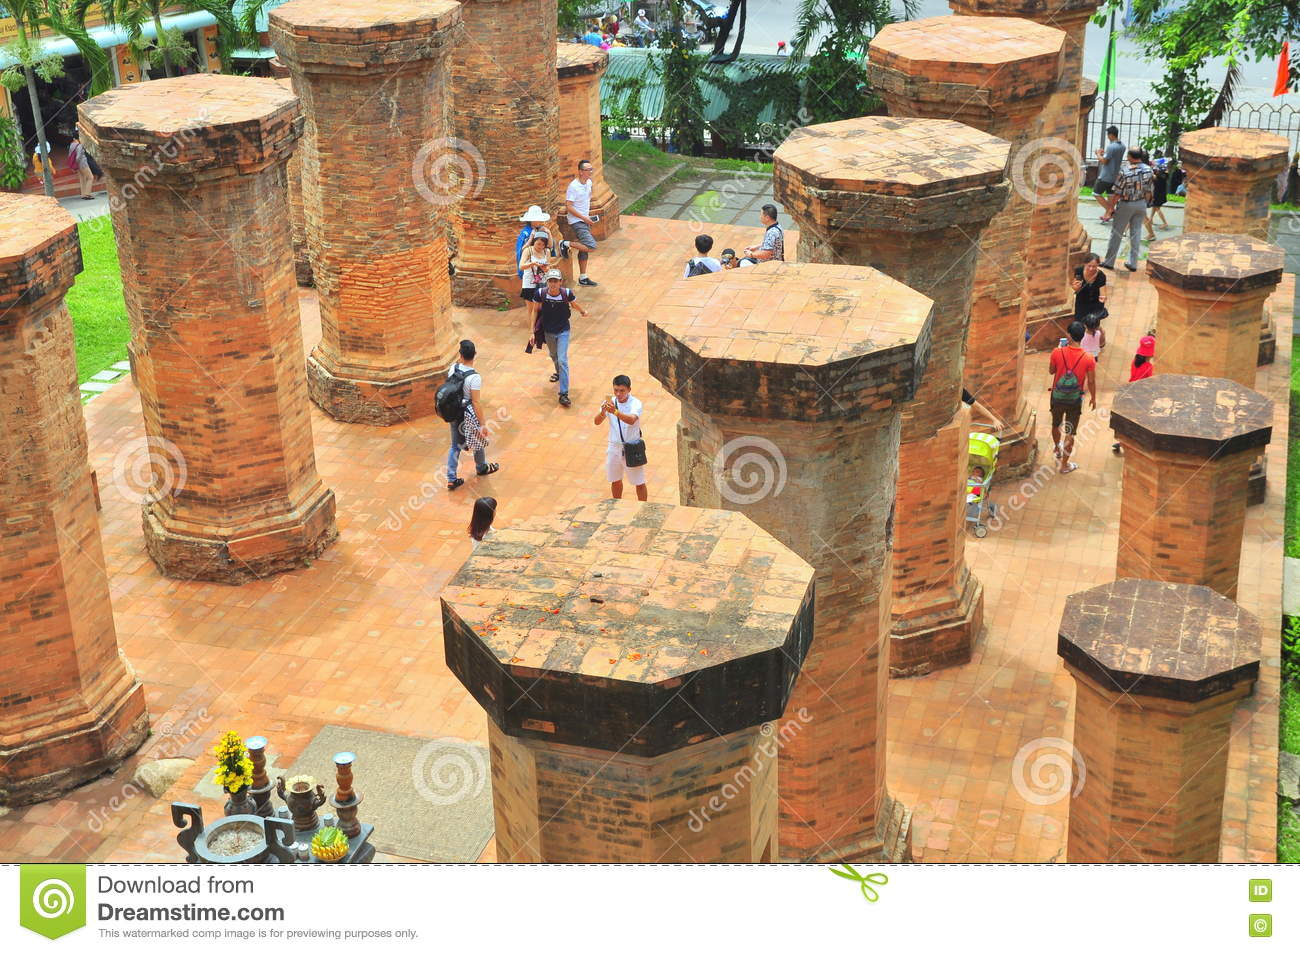 Travellers are visiting the Ponagar temple in Nha Trang